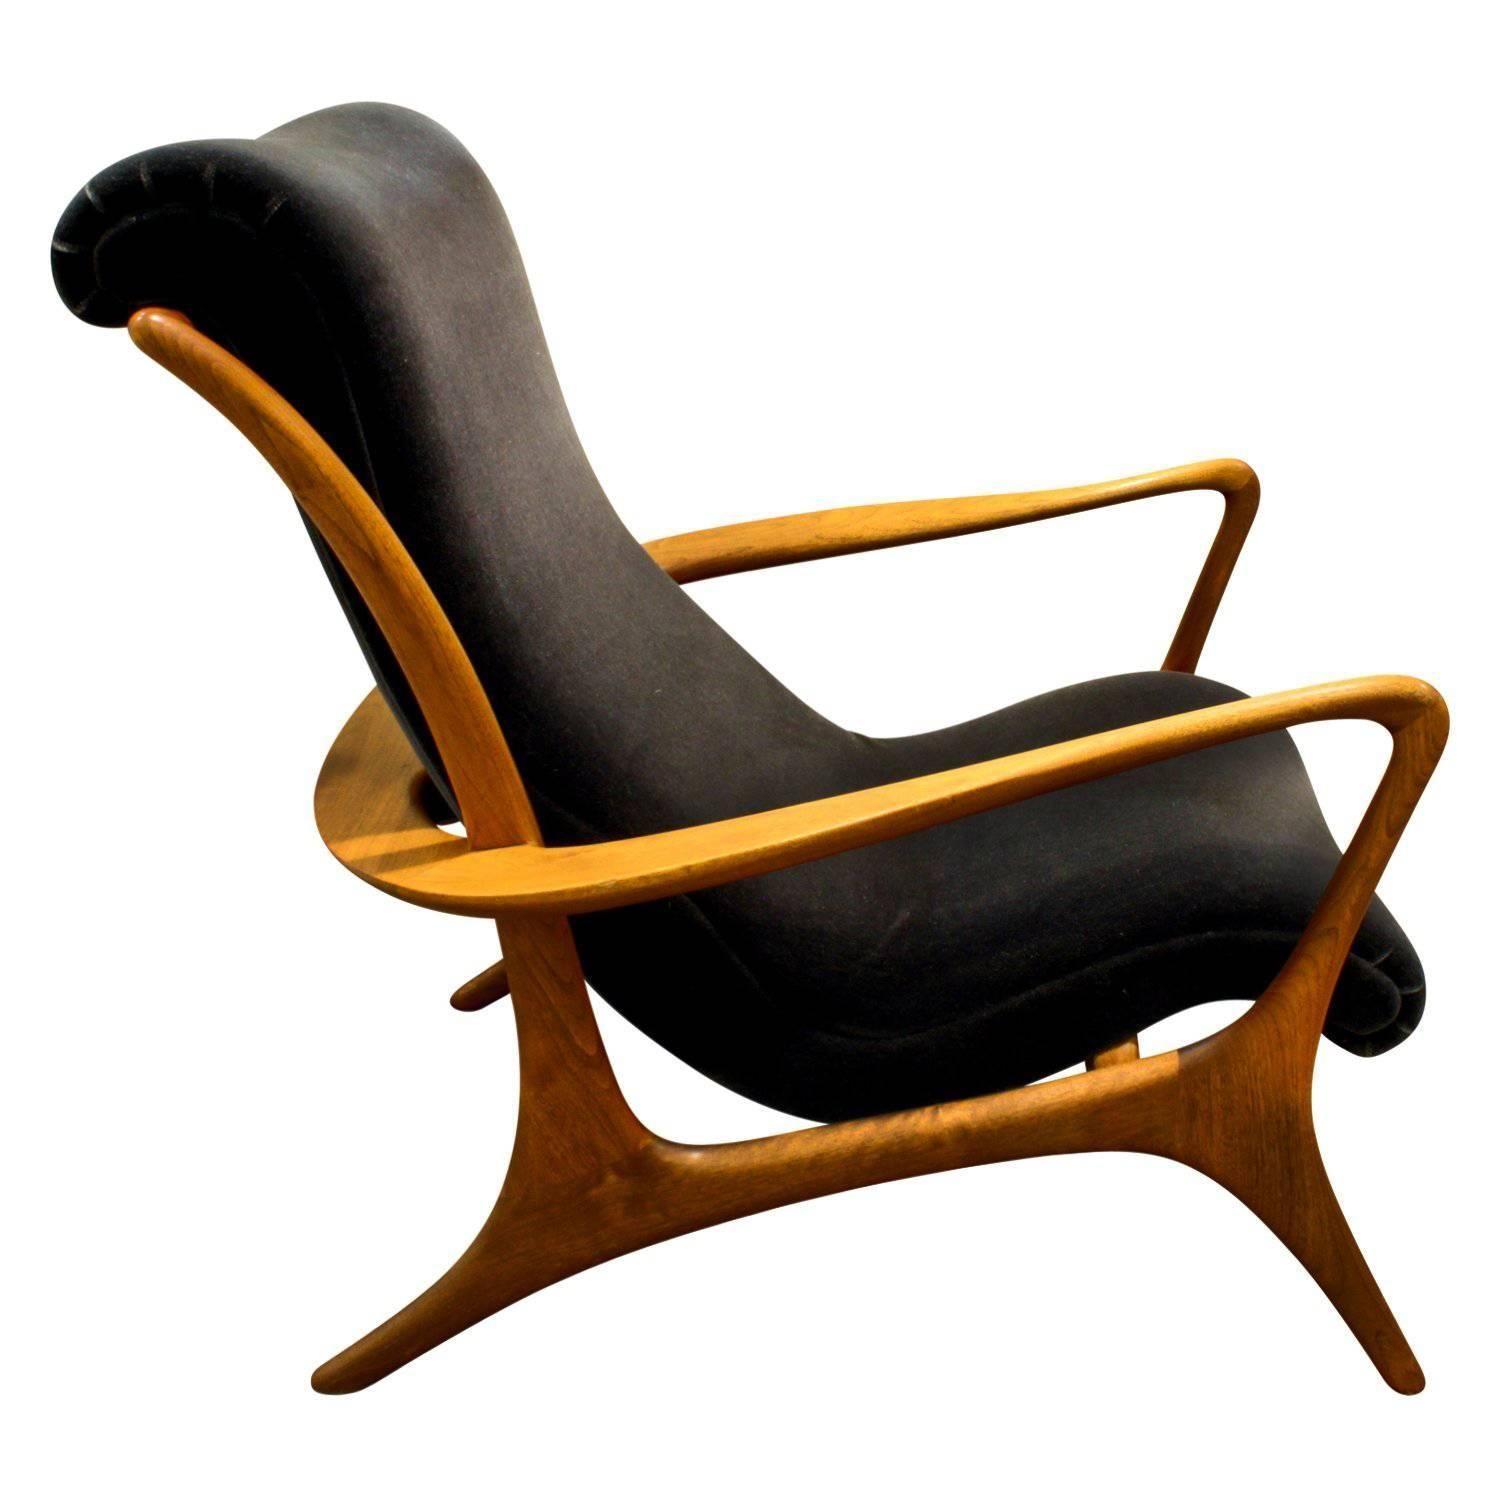 Contour Chair Lounge Vladimir Kagan Sculpted Contour Chair 1950s Home Interior In